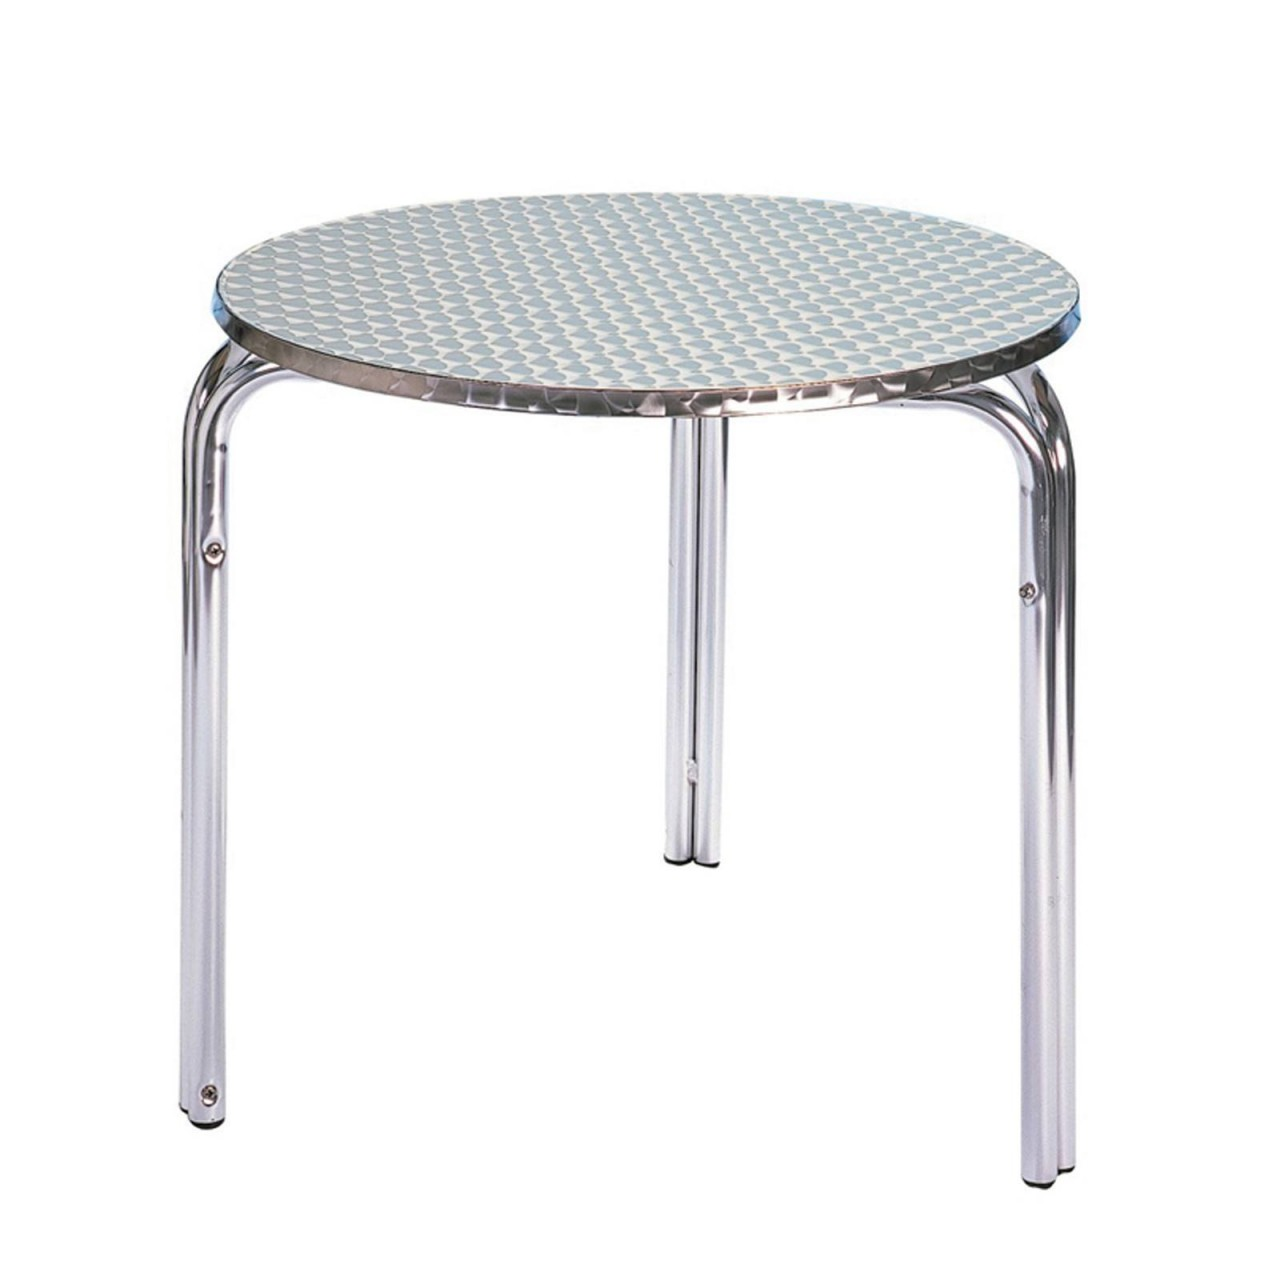 furniture event hire party cater national stackable aluminium table zebi accent cabinet legs ikea small square wooden cooler hobby lobby console pier bedroom round decorative